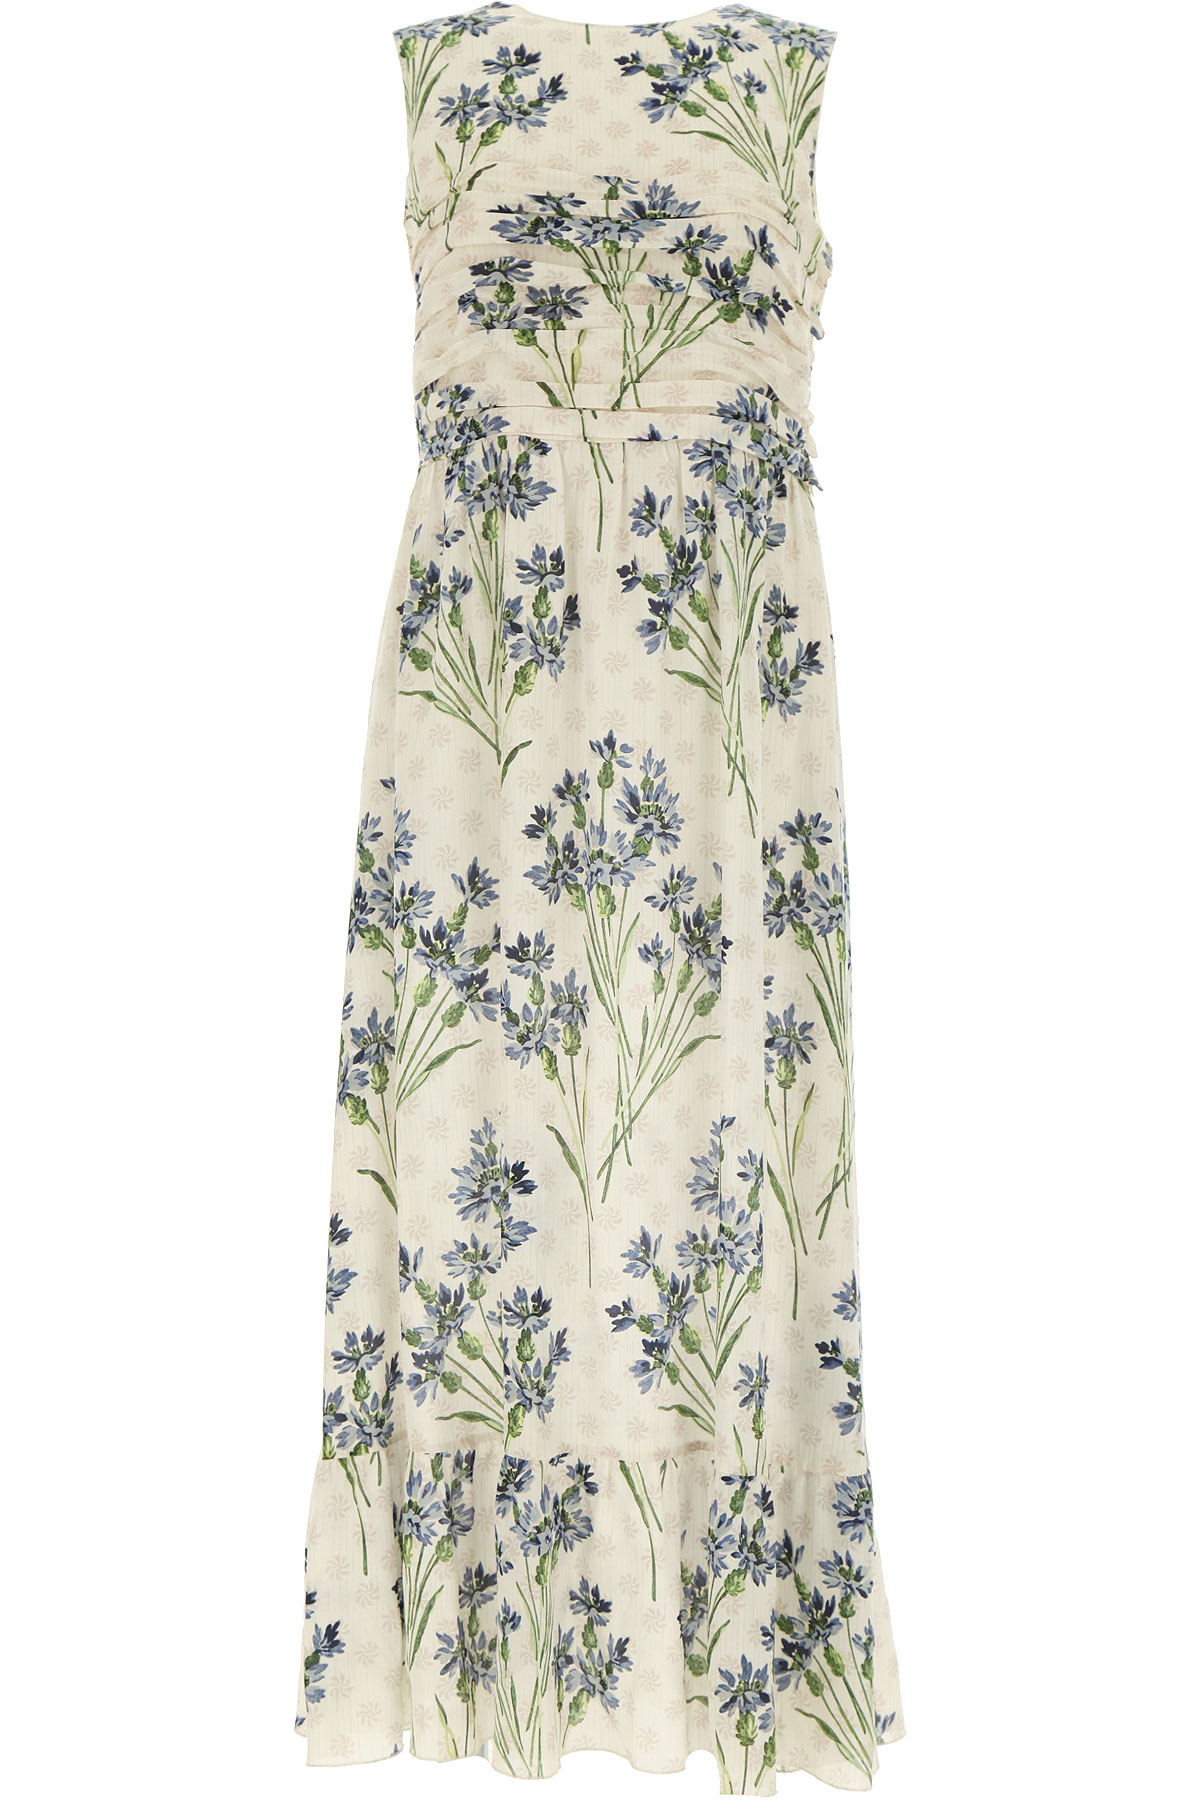 RED Valentino Dress for Women, Evening Cocktail Party On Sale, Cornflower, Silk, 2019, 6 8